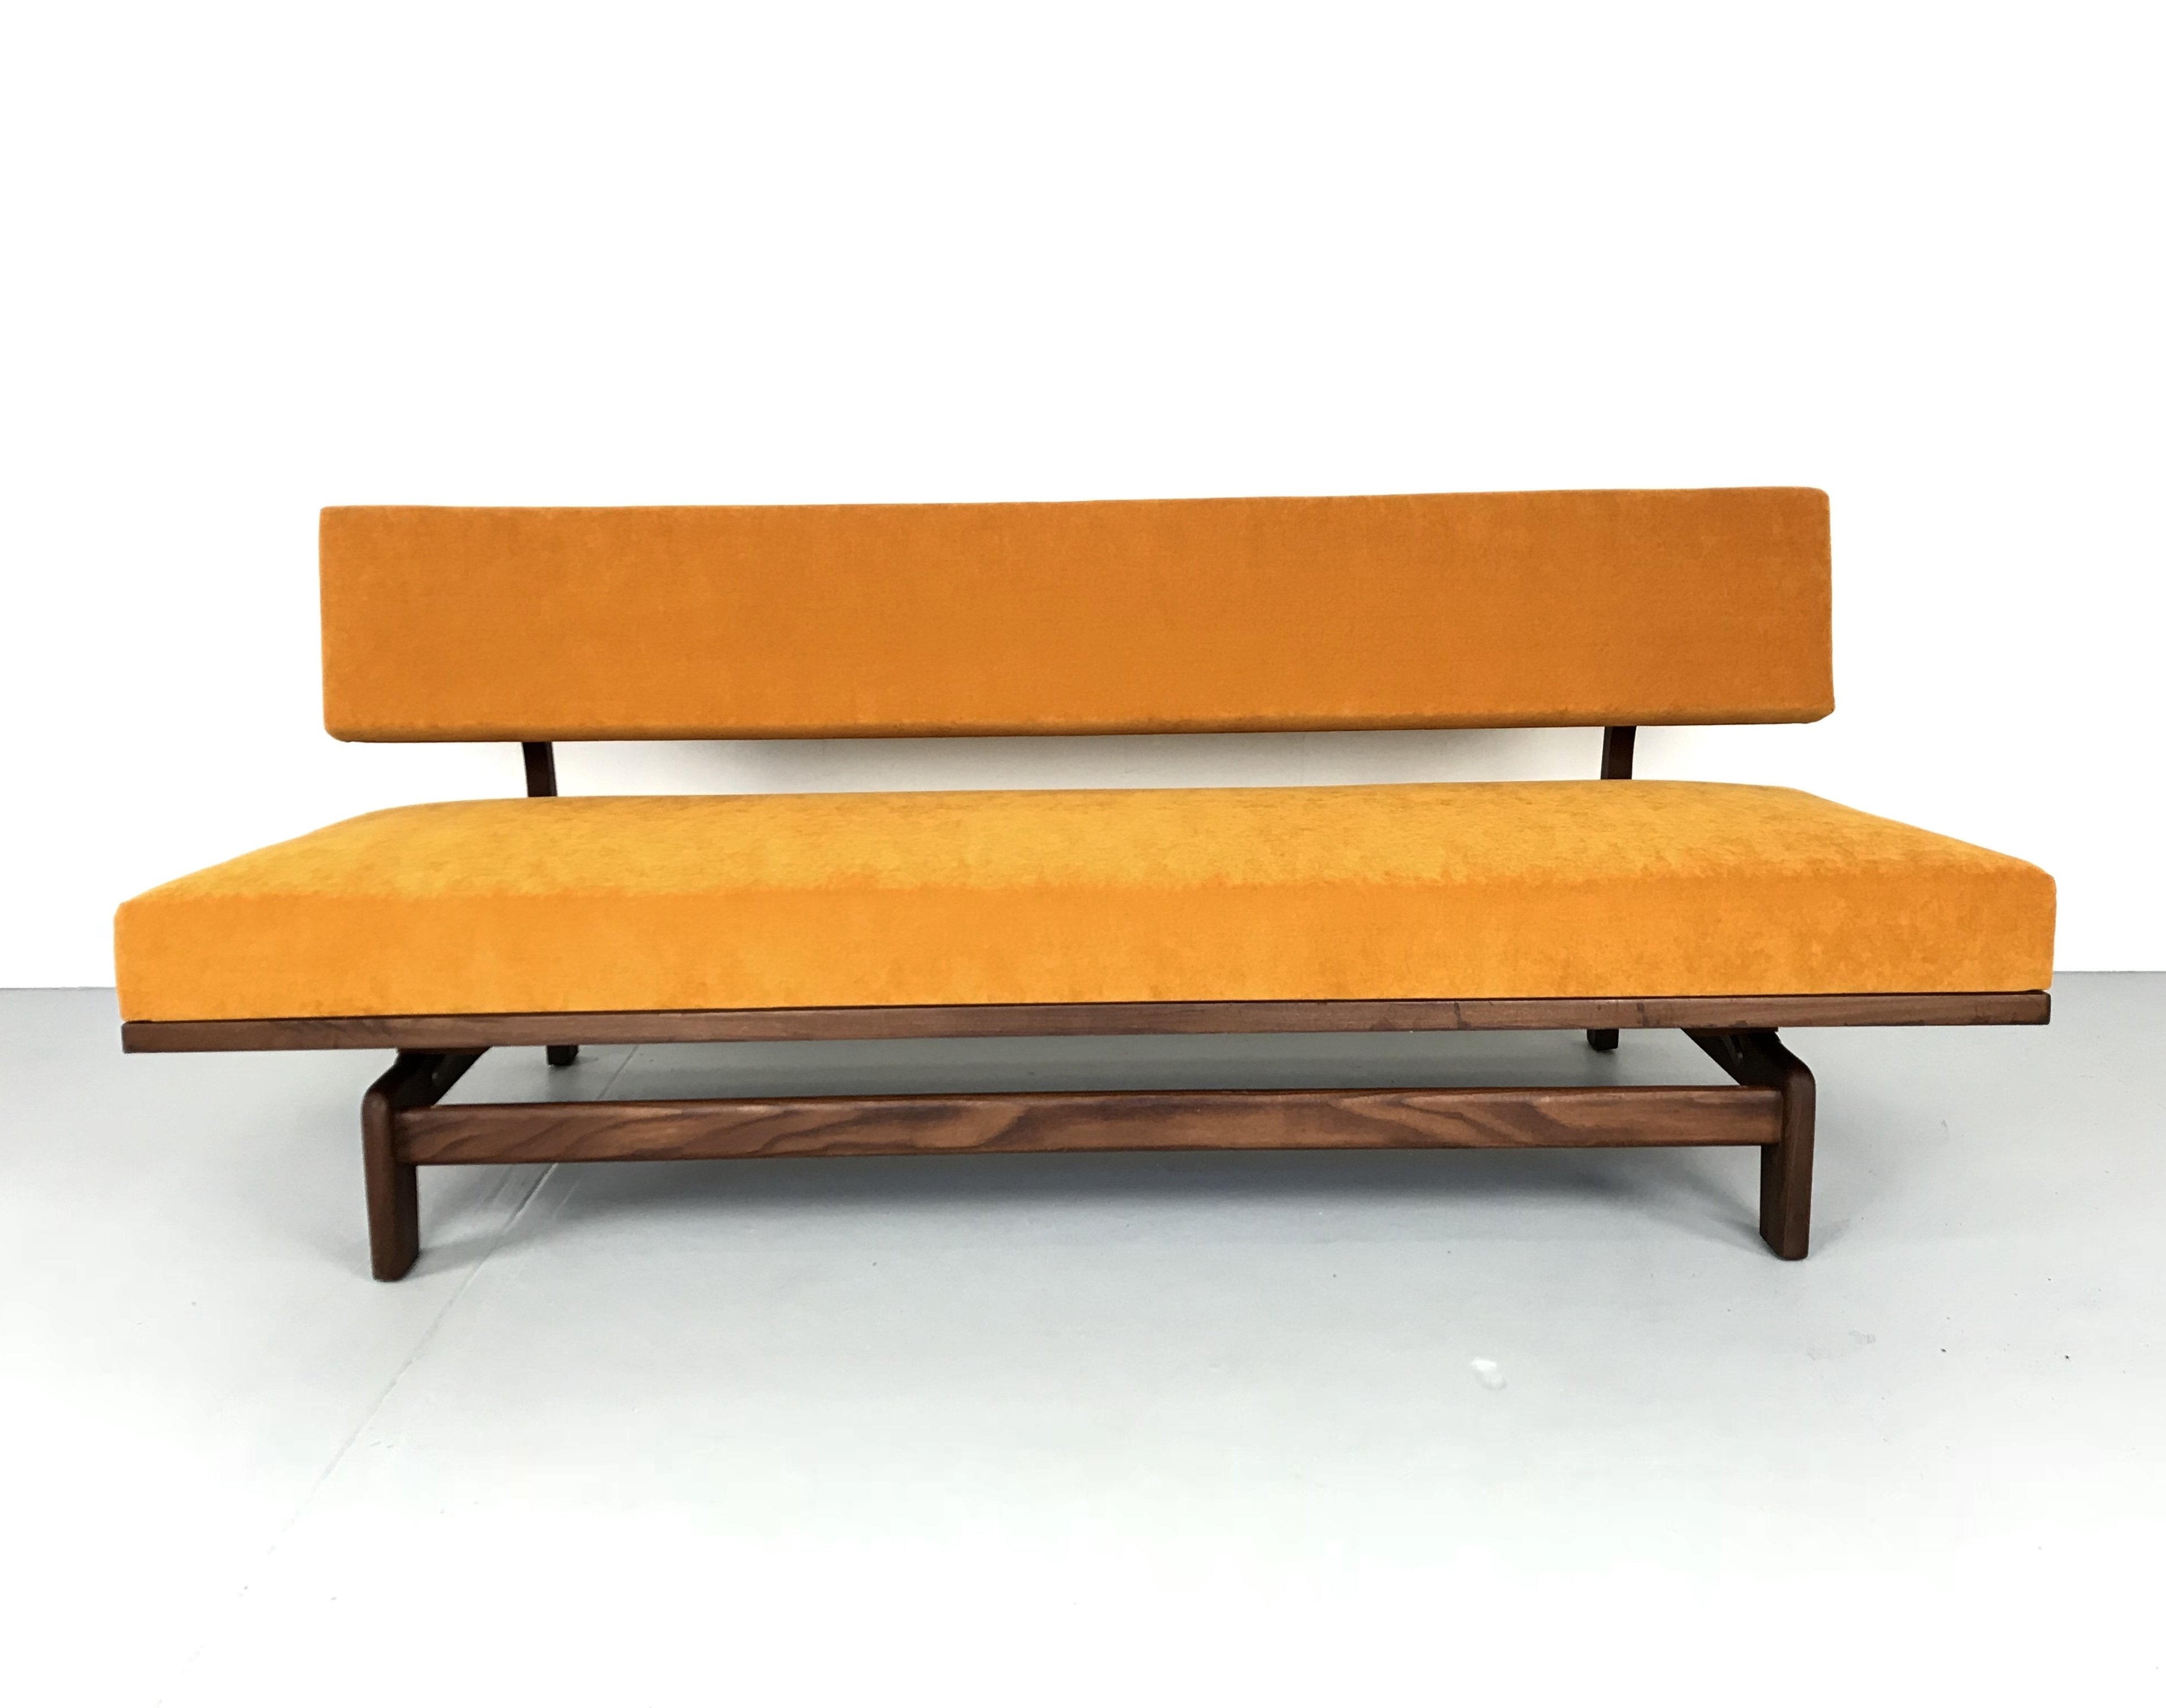 daybed sofa by hans bellman 1961 - Daybed Sofa